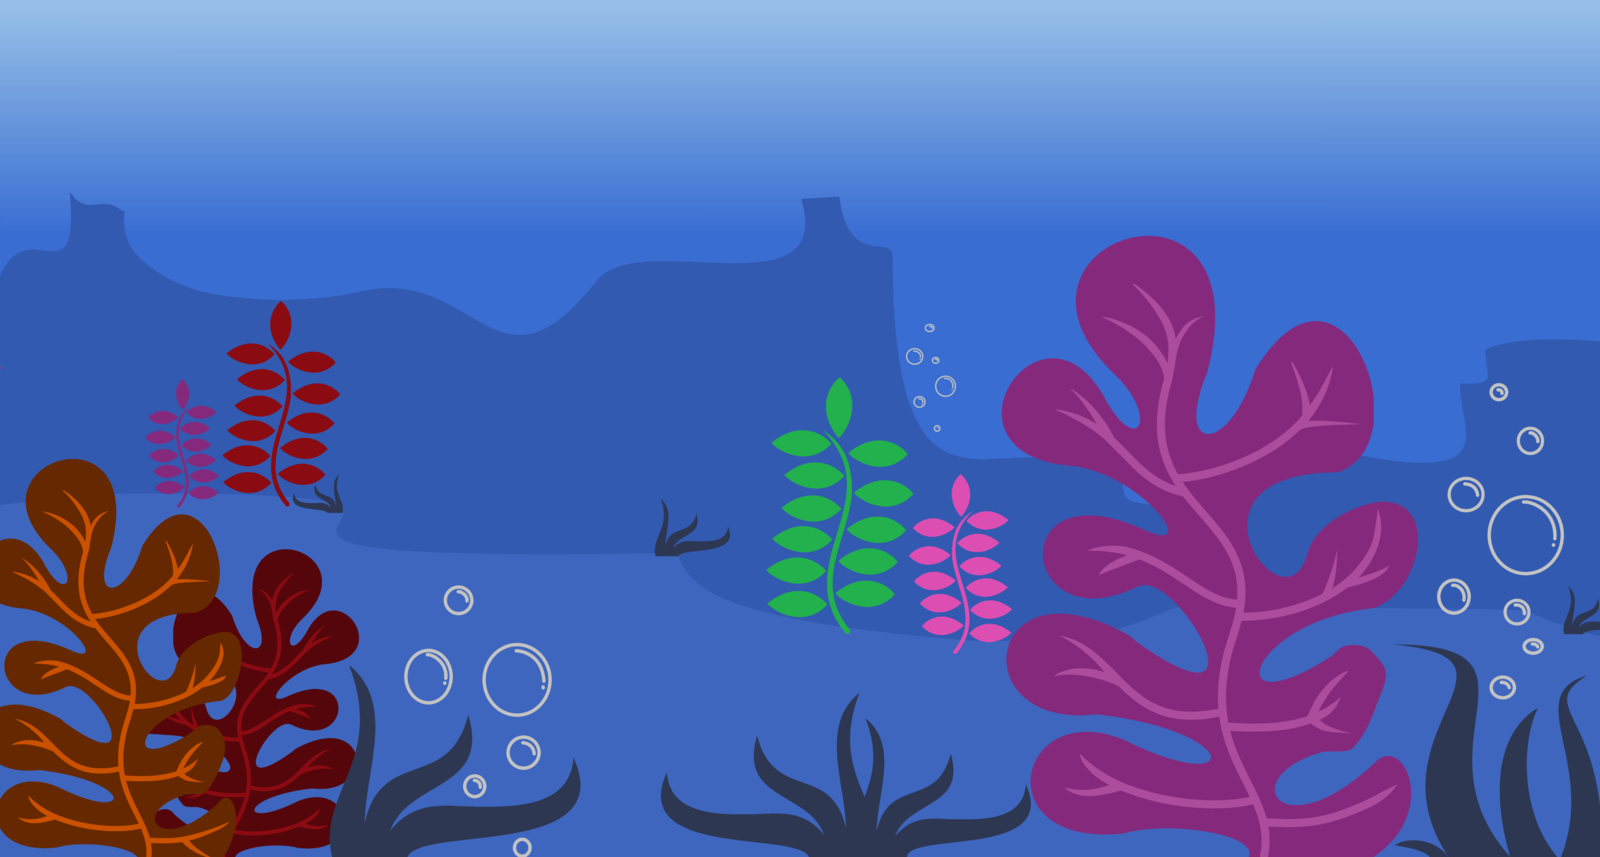 Ocean background clipart royalty free stock Free Ocean Background Cliparts, Download Free Clip Art, Free Clip ... royalty free stock